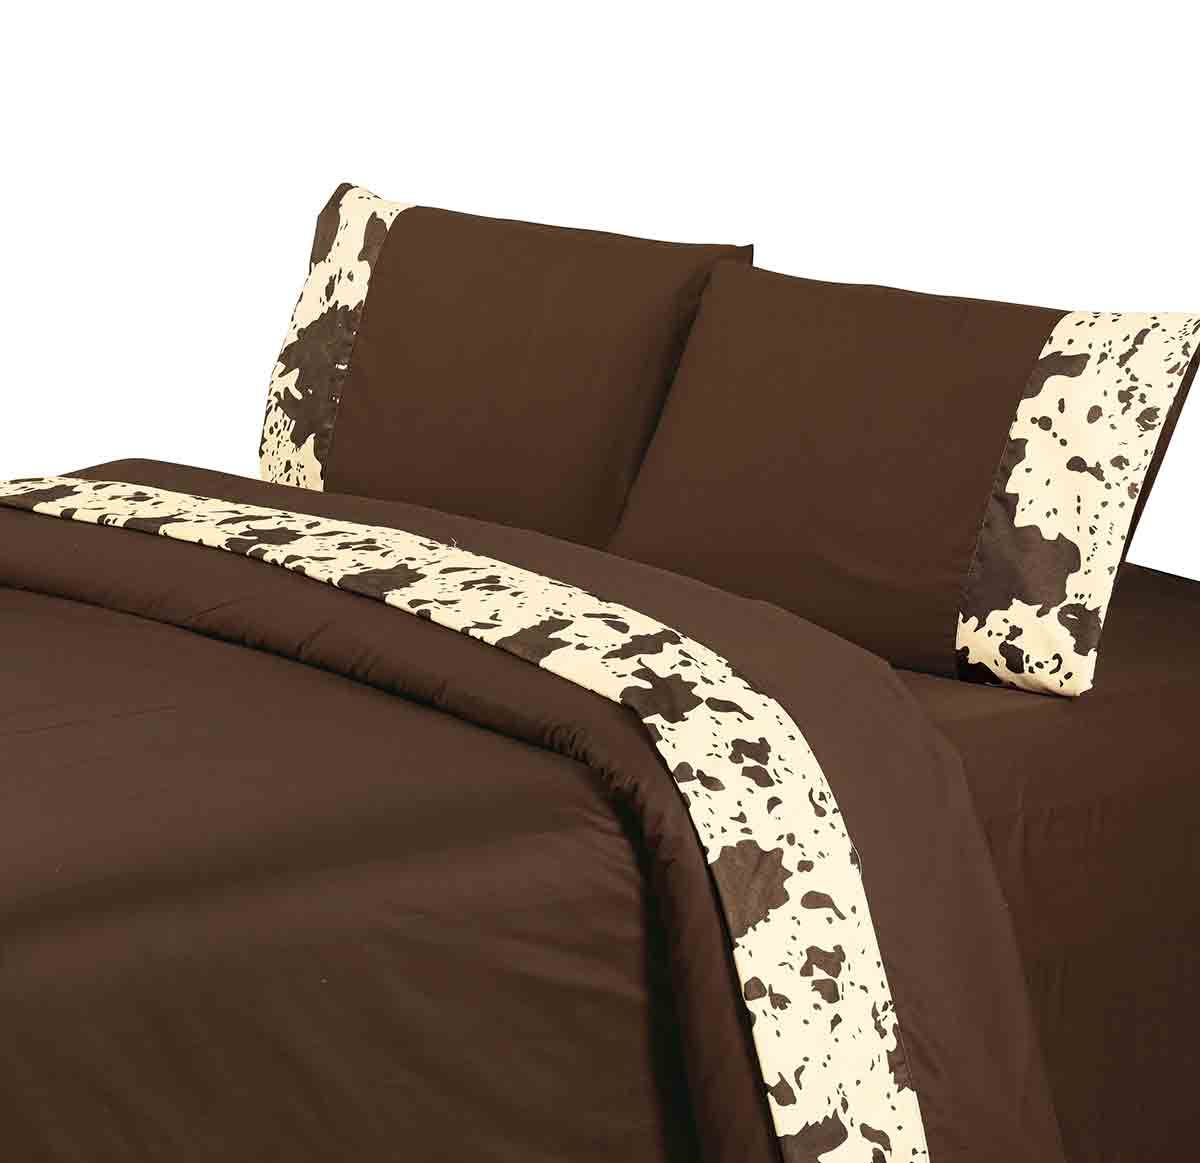 Chocolate Cowhide Sheet Set - Twin